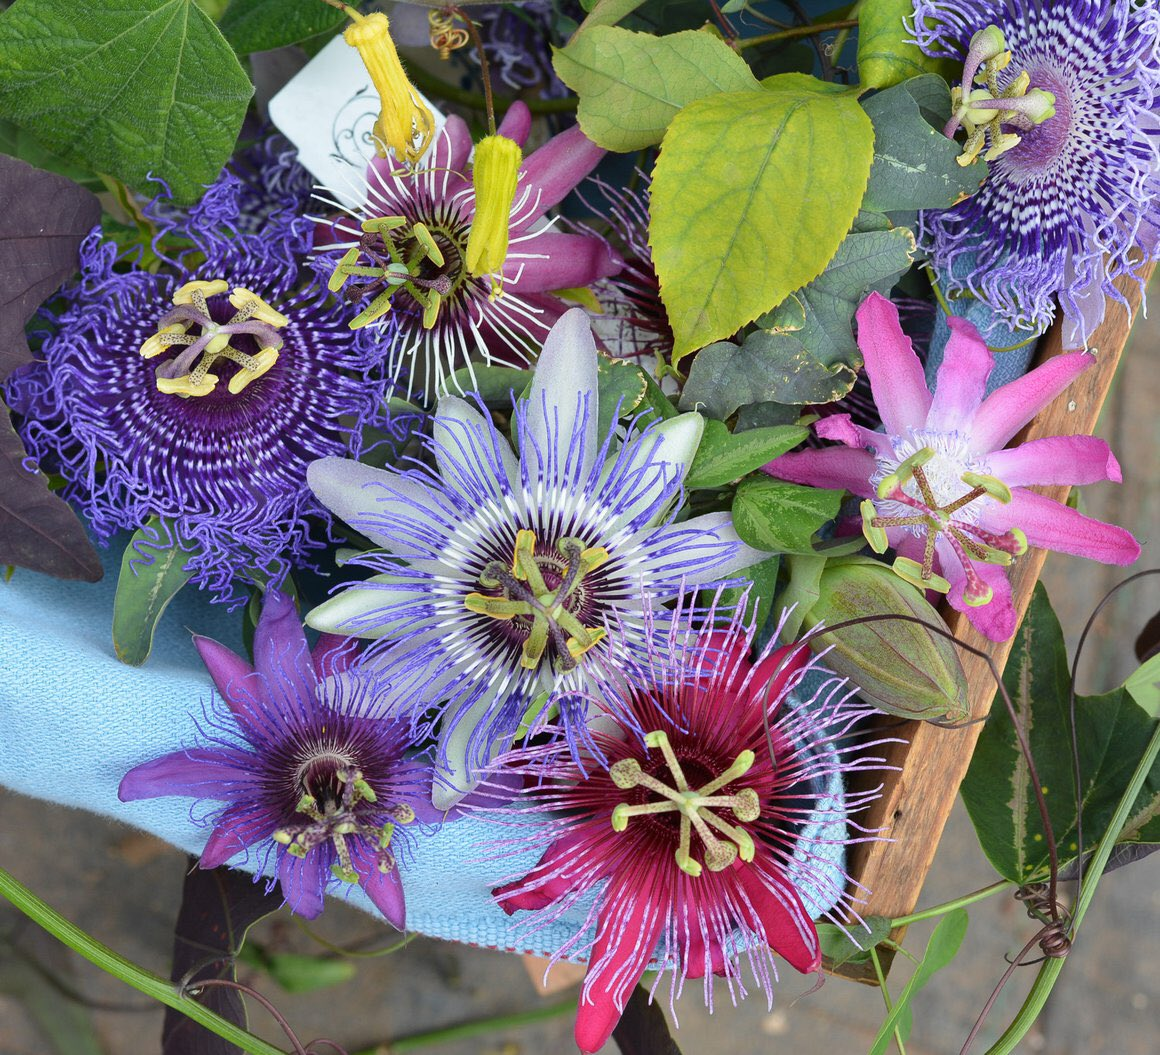 Oh No On Twitter I Just Wanna Tell U About The Passiflora Its The